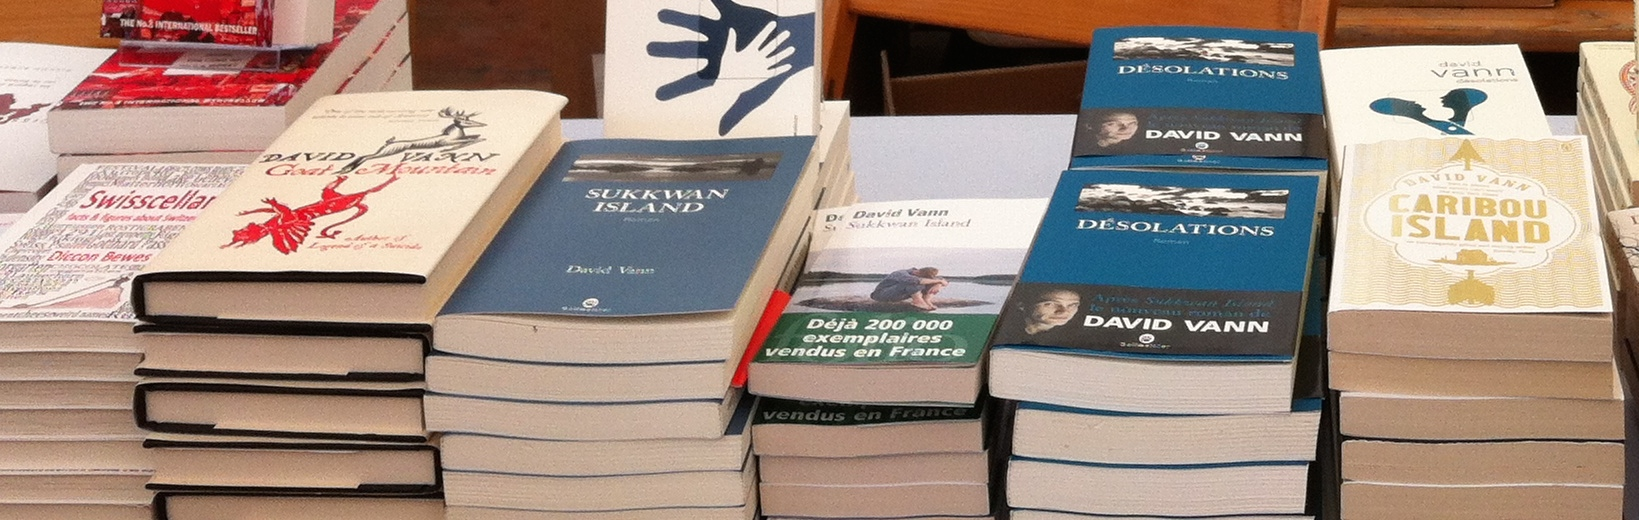 Book and Literary events in English – Book fair in Morges in September, Reading group in Crans, Writers' Group in Geneva